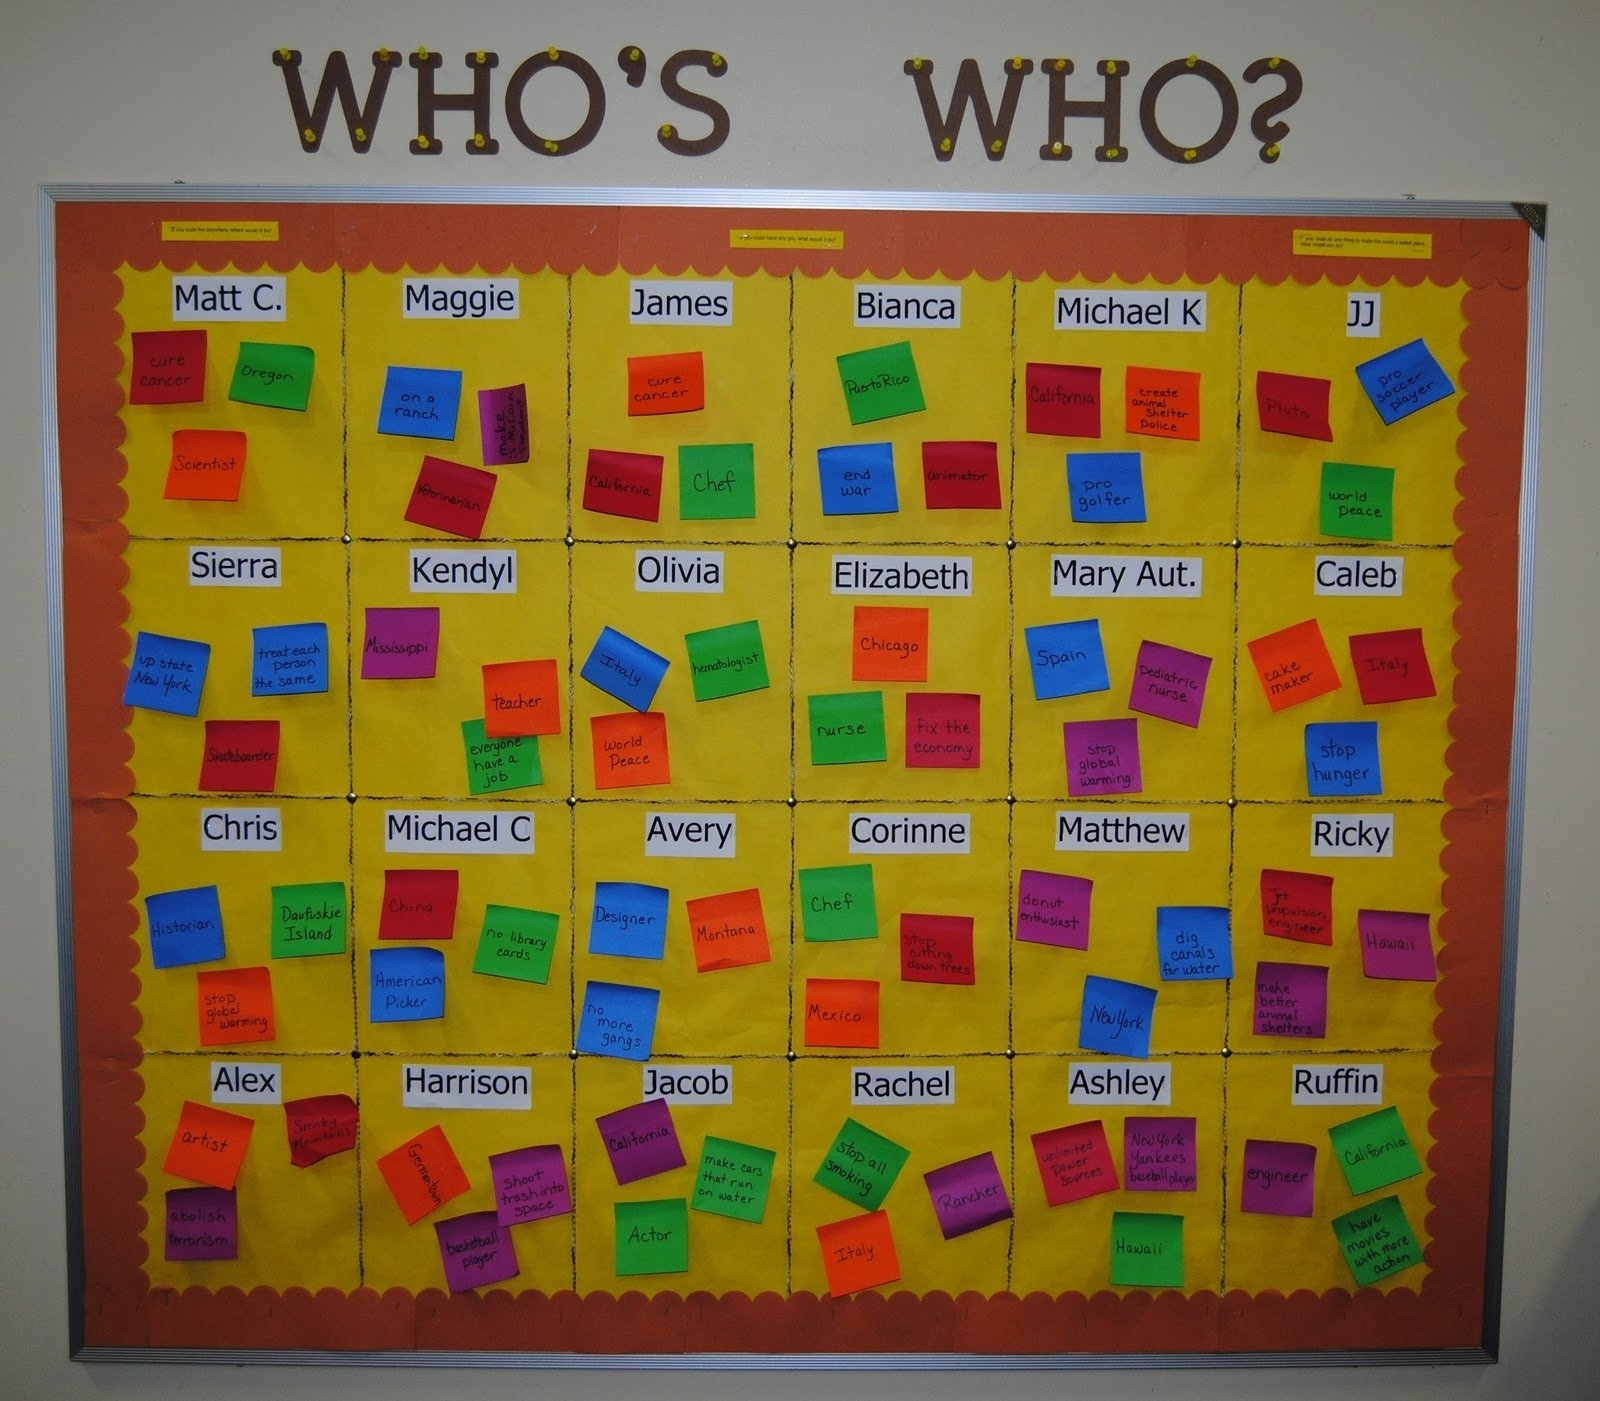 10 Ideal Beginning Of Year Bulletin Board Ideas hallway bulletin boards 4th grade ideas collection fifth grade back 2020